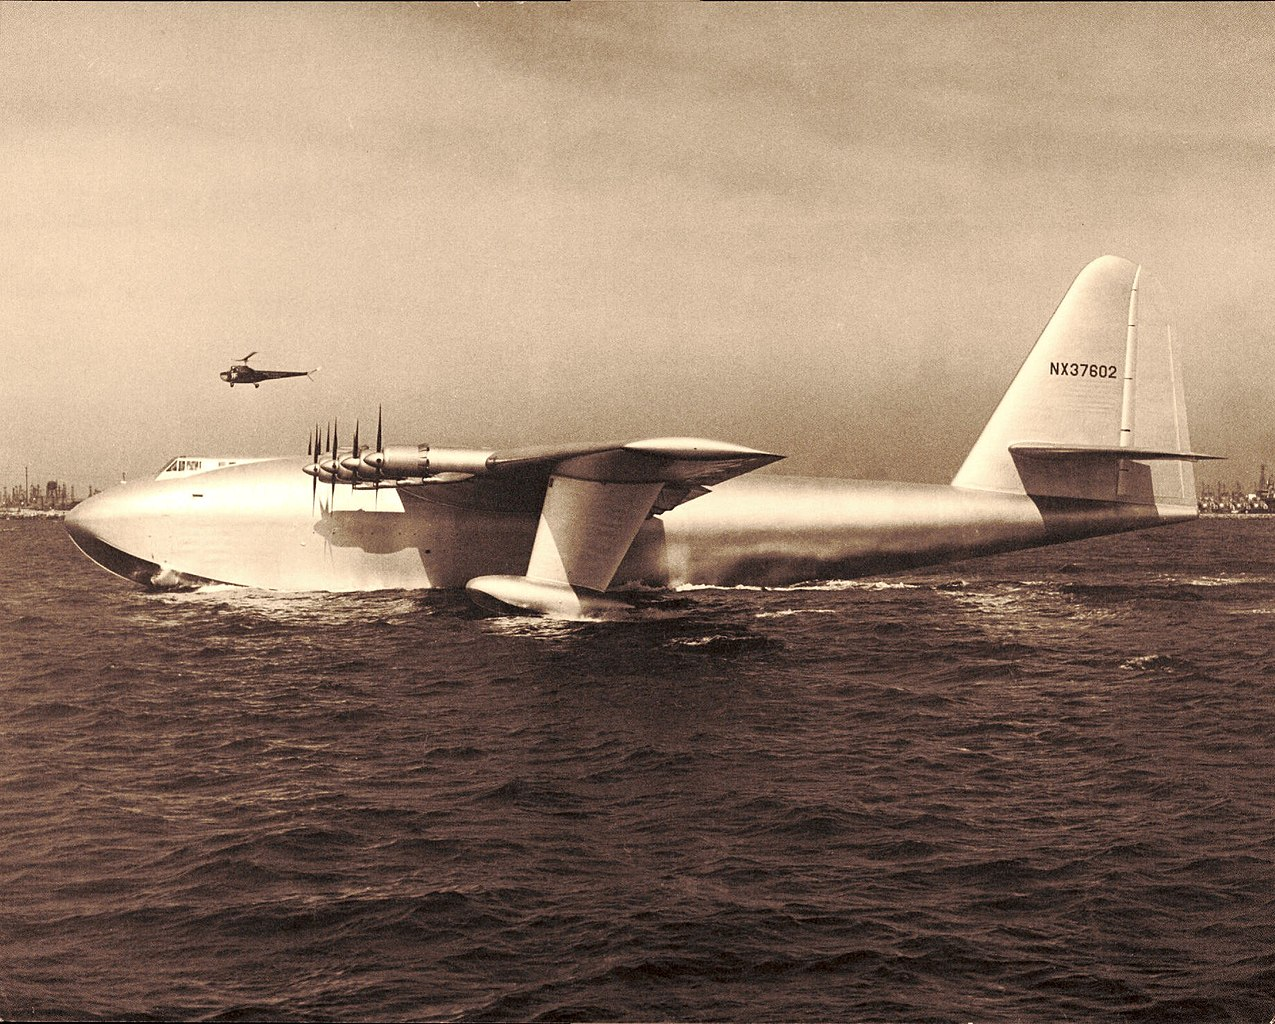 Here's why Howard Hughes' Spruce Goose couldn't be an effective troop transport